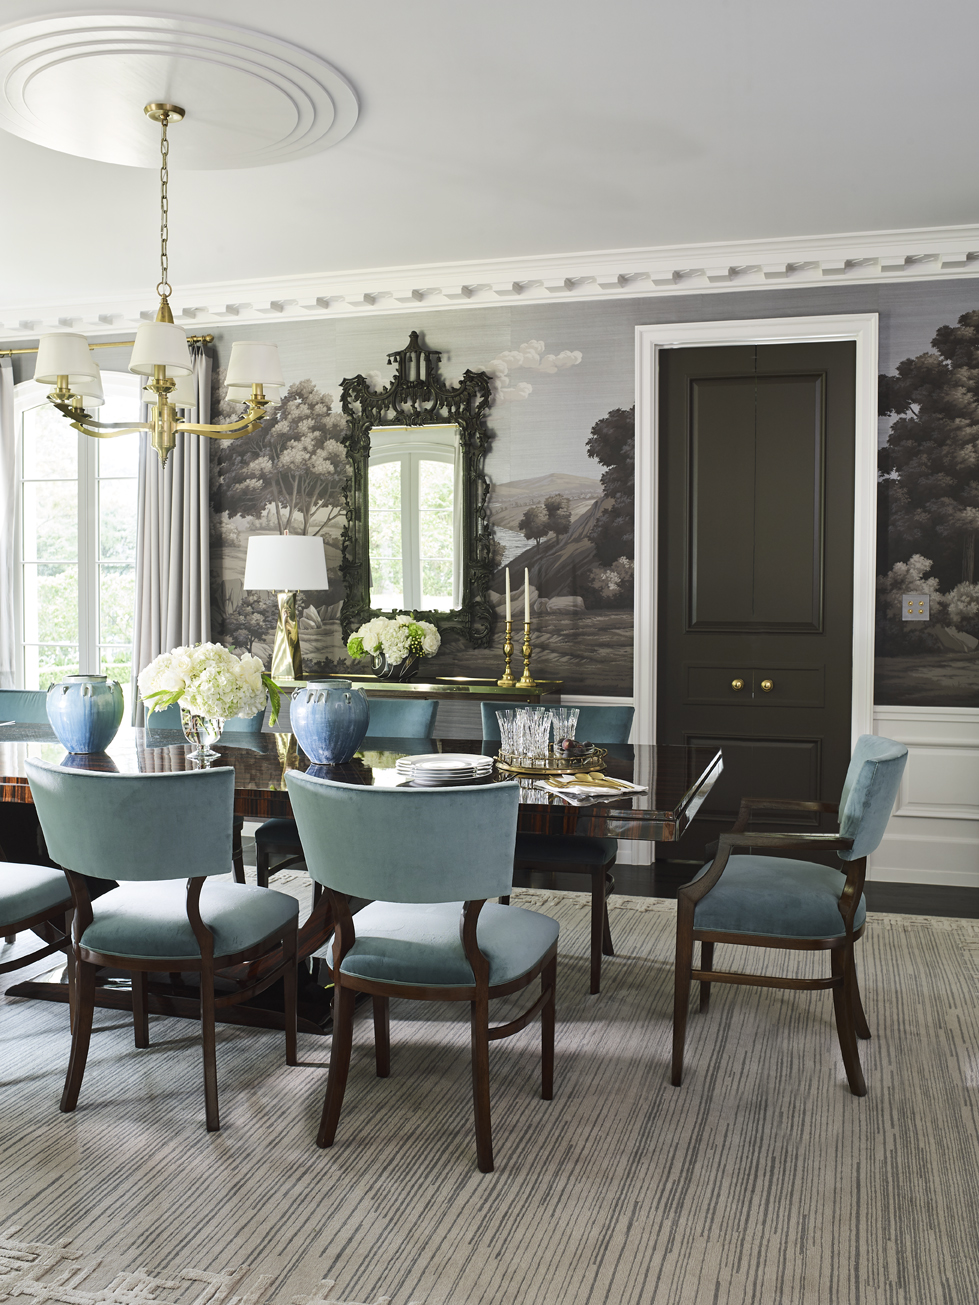 The dining room is equally impressive withArt Deco-style mouldings.